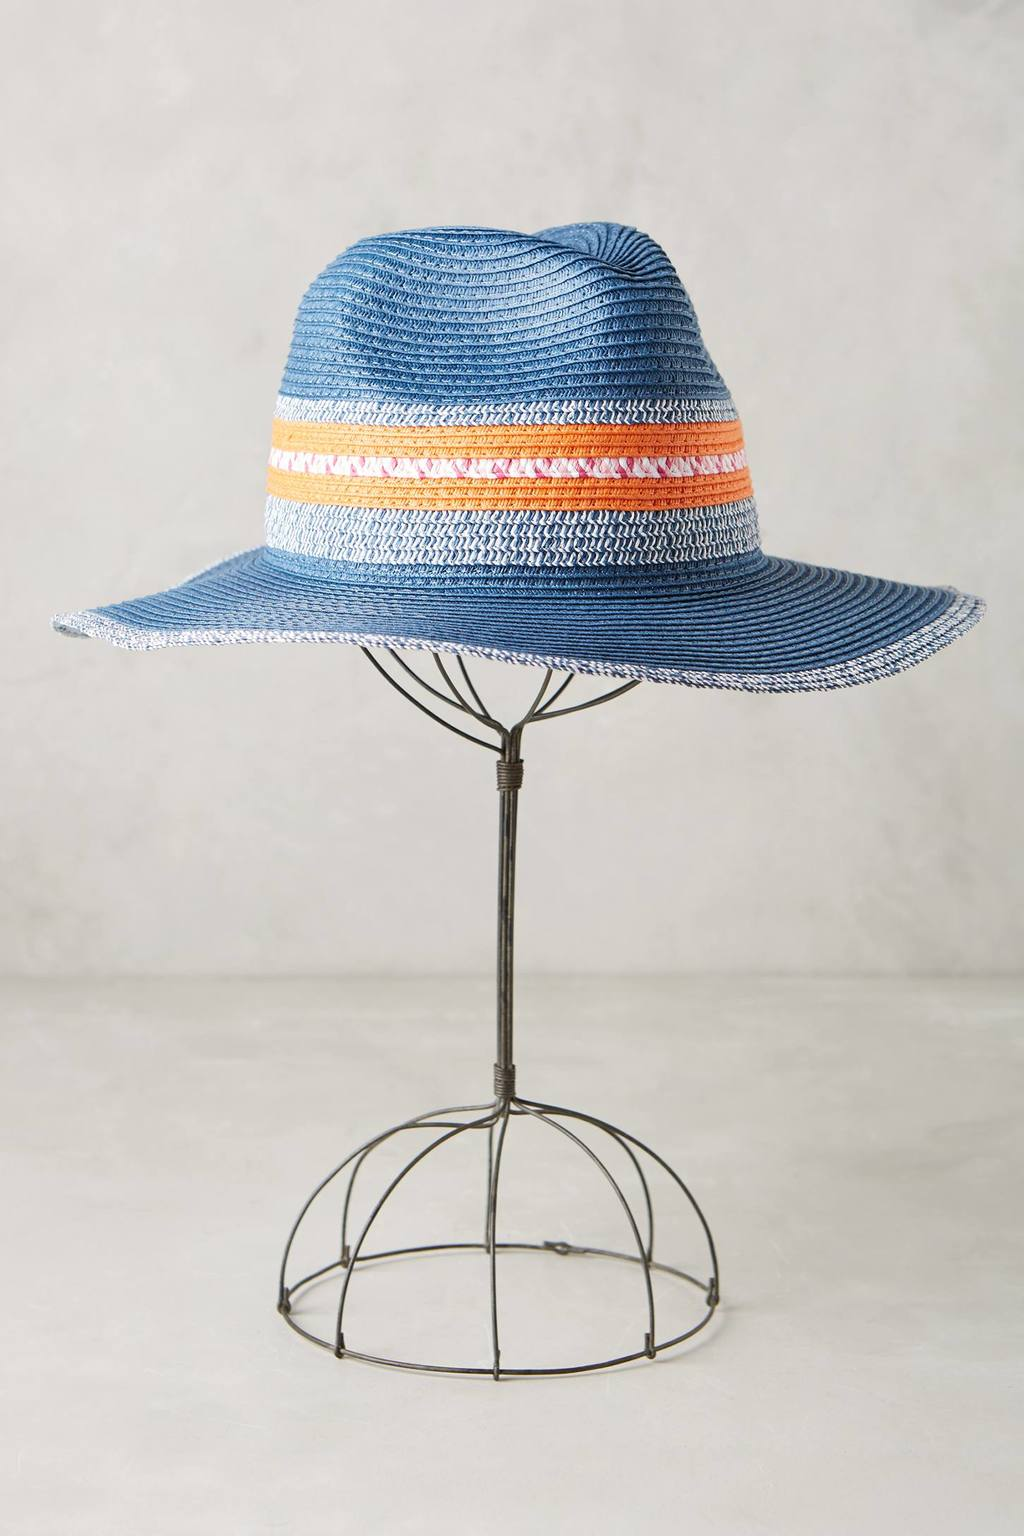 Colorada Rancher - predominant colour: denim; secondary colour: bright orange; occasions: casual; type of pattern: standard; style: fedora; size: standard; material: macrame/raffia/straw; pattern: striped; season: s/s 2016; wardrobe: highlight